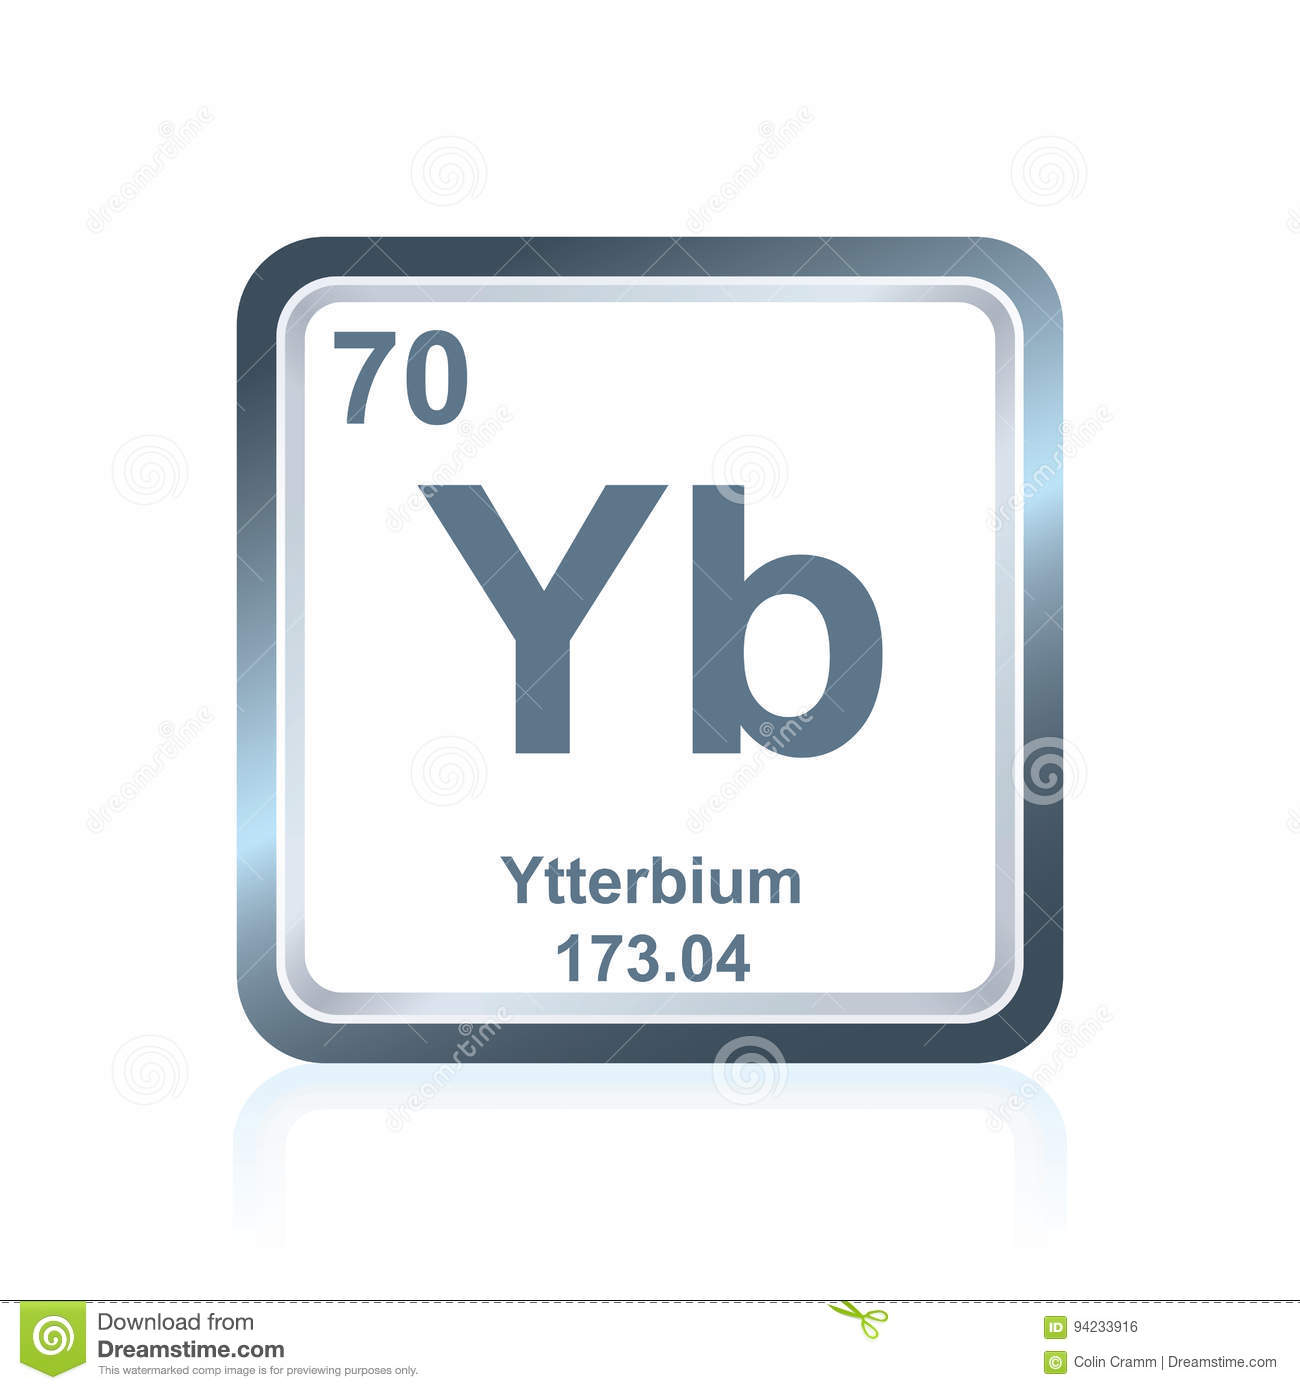 Chemical element ytterbium from the periodic table stock symbol of chemical element ytterbium as seen on the periodic table of the elements including atomic number and atomic weight urtaz Images